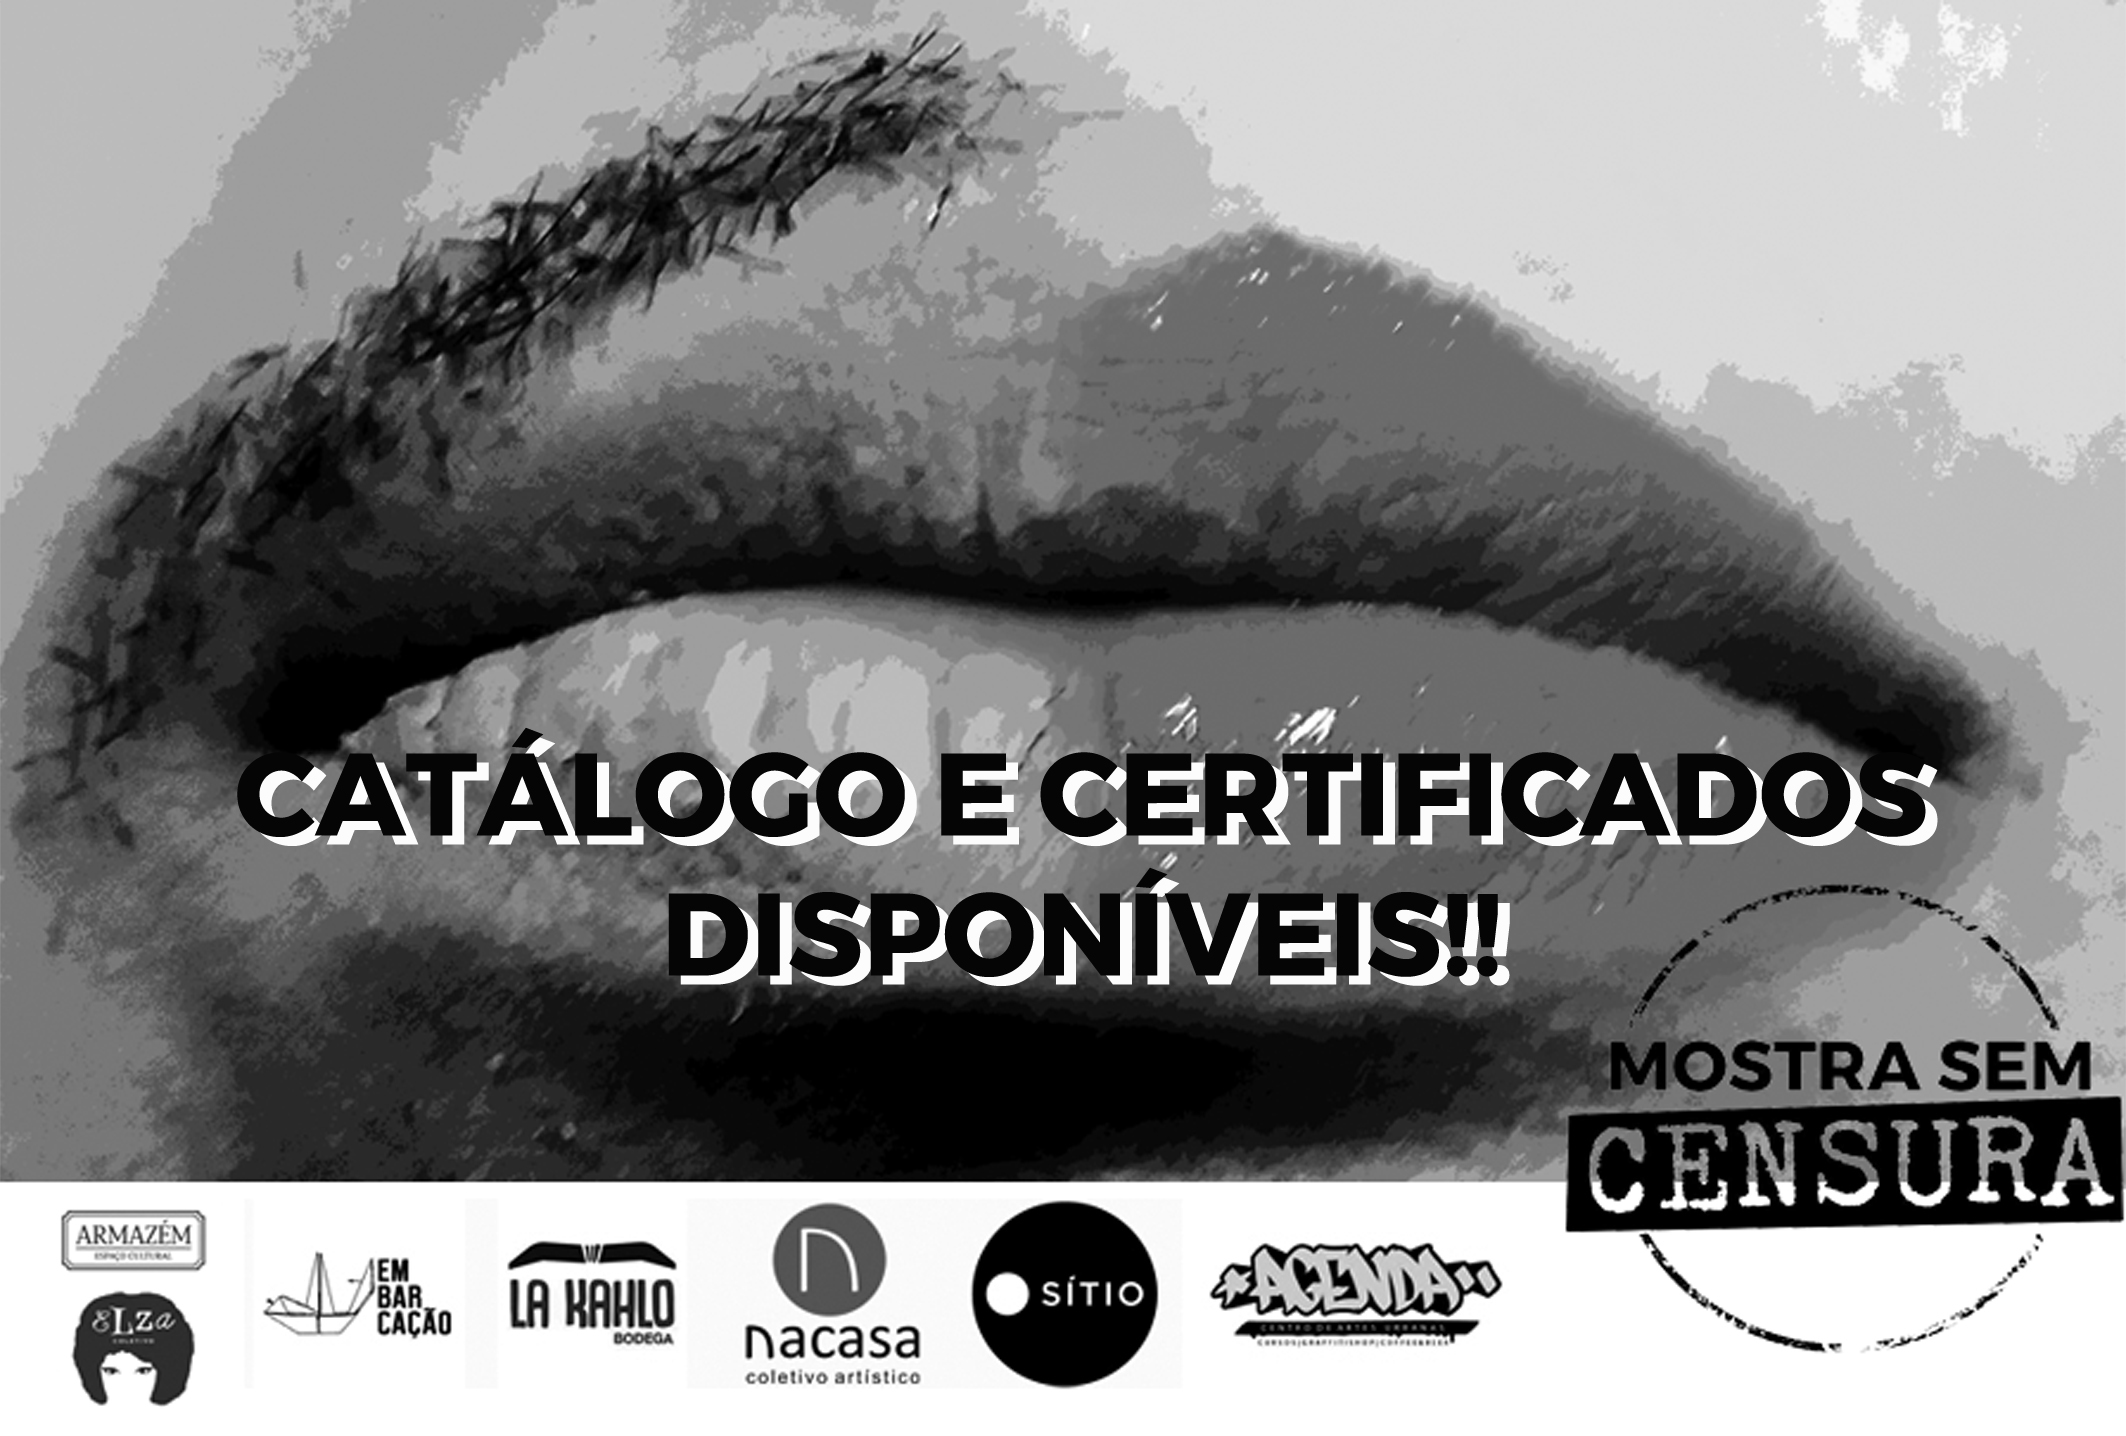 mostra site